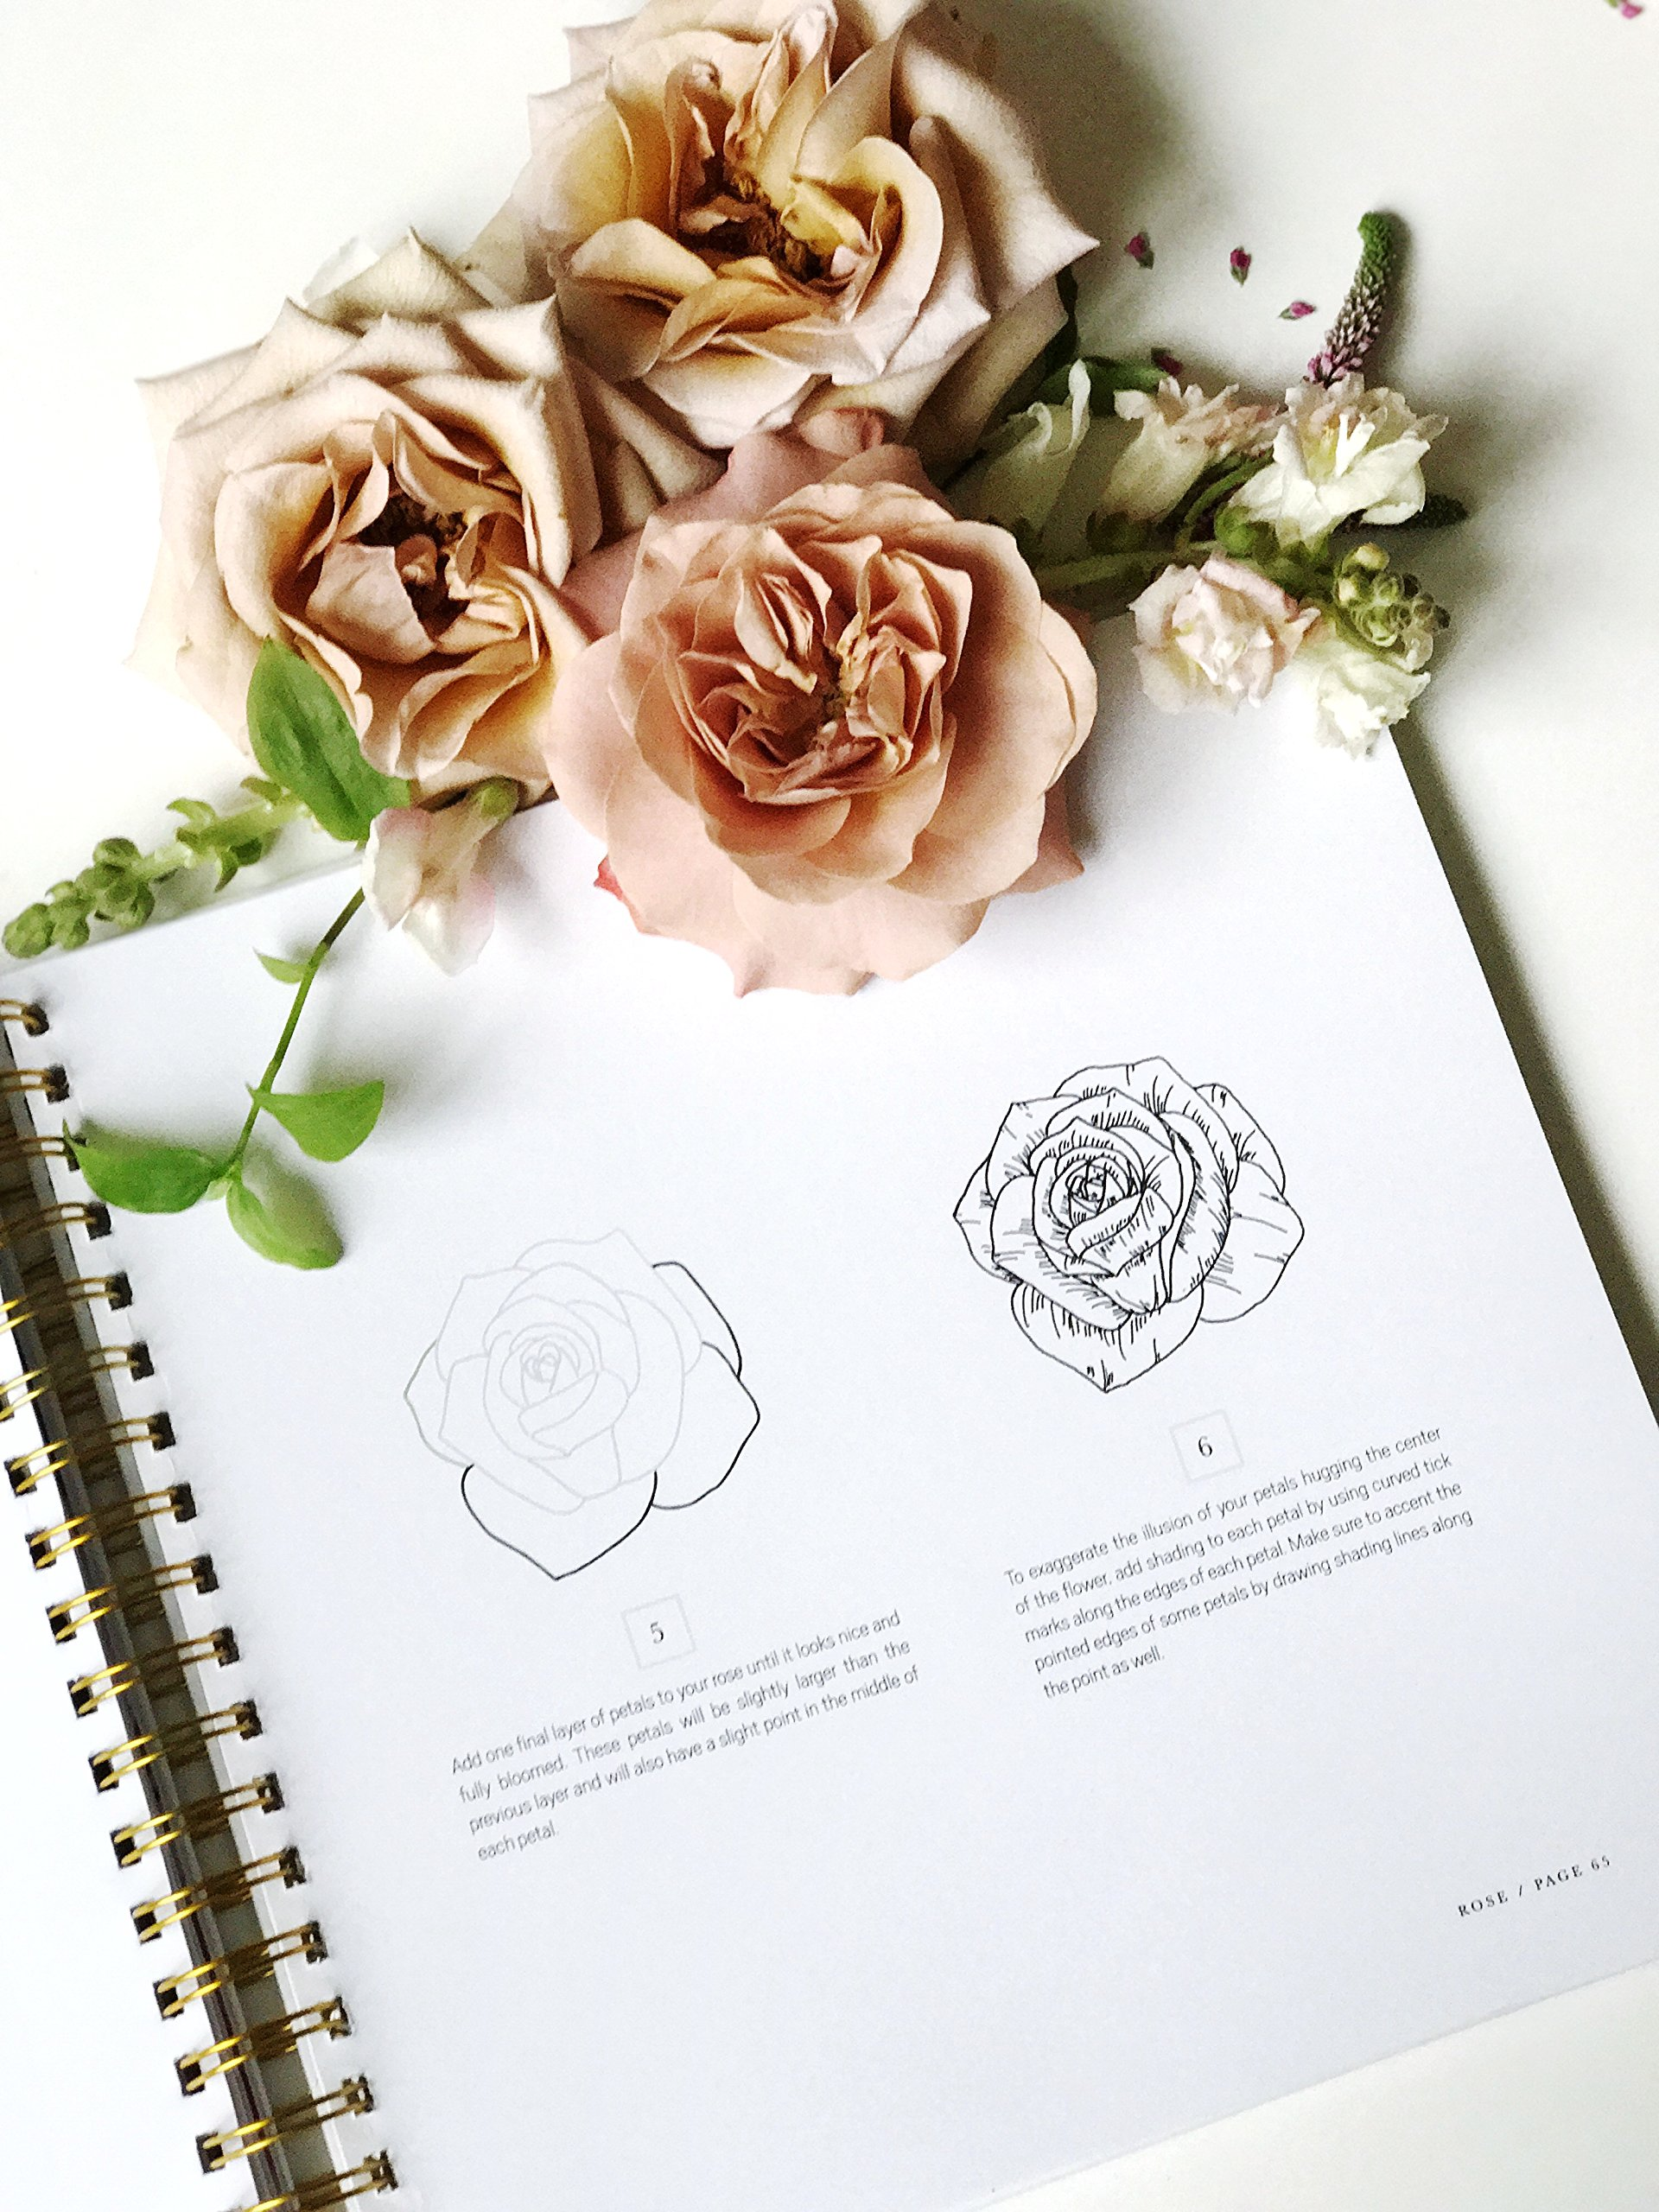 How To Draw Modern Florals: An Introduction To The Art Of Flowers, Cacti,  And More: Alli Koch, Paige Tate Select: 9781944515508: Amazon: Books